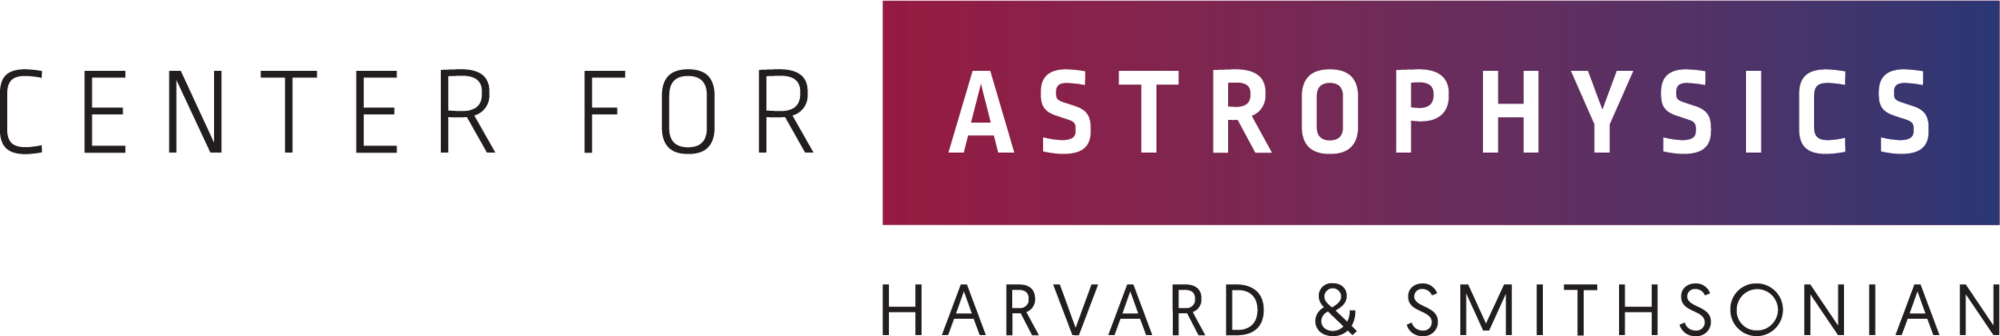 Center for Astrophysics Logo